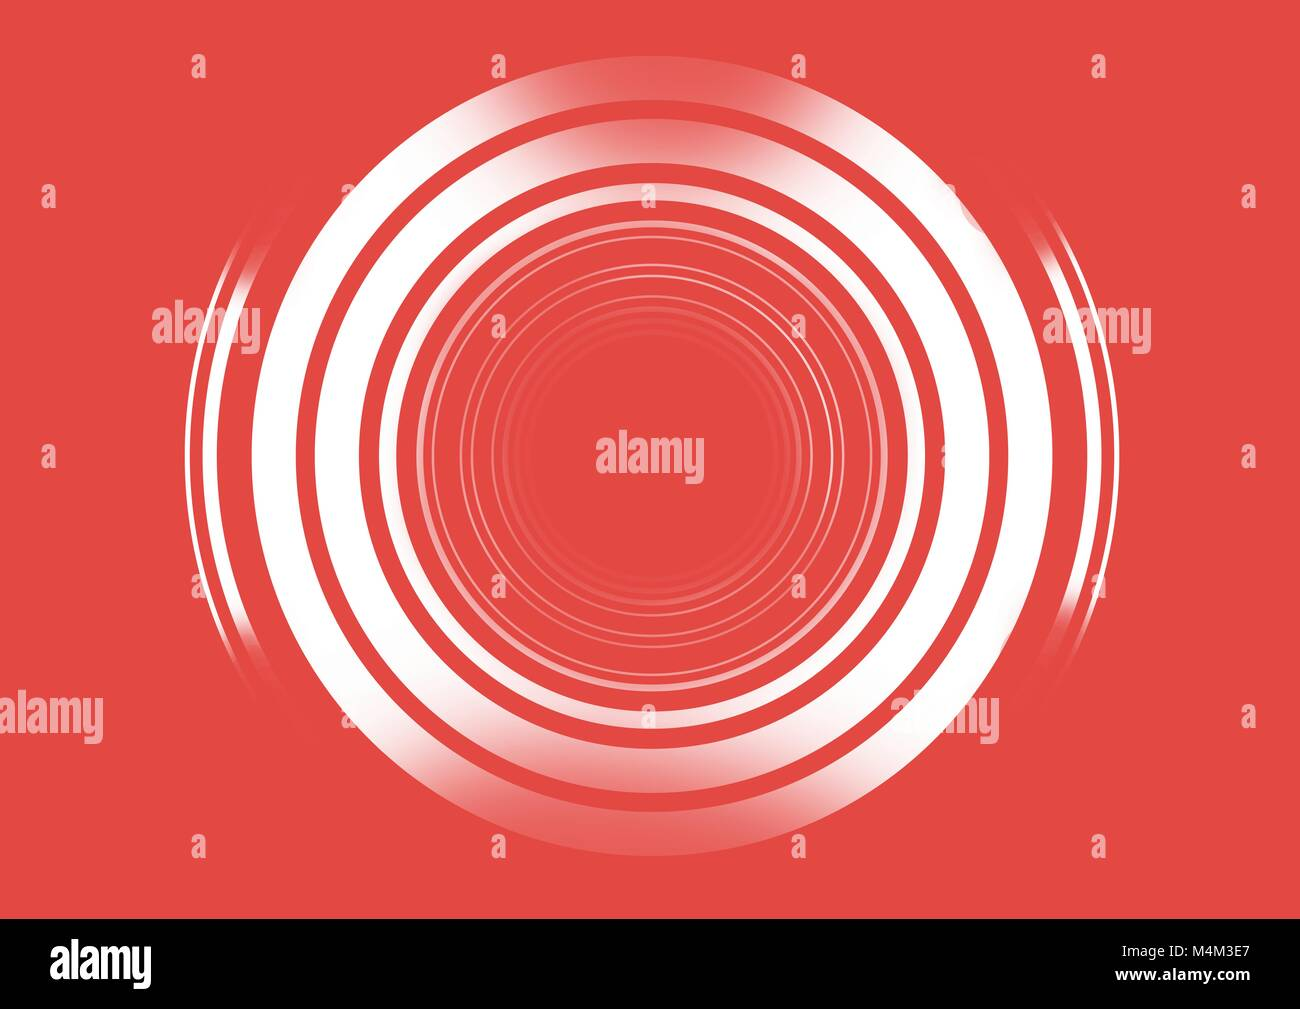 Shimmering circles on red background - Stock Image